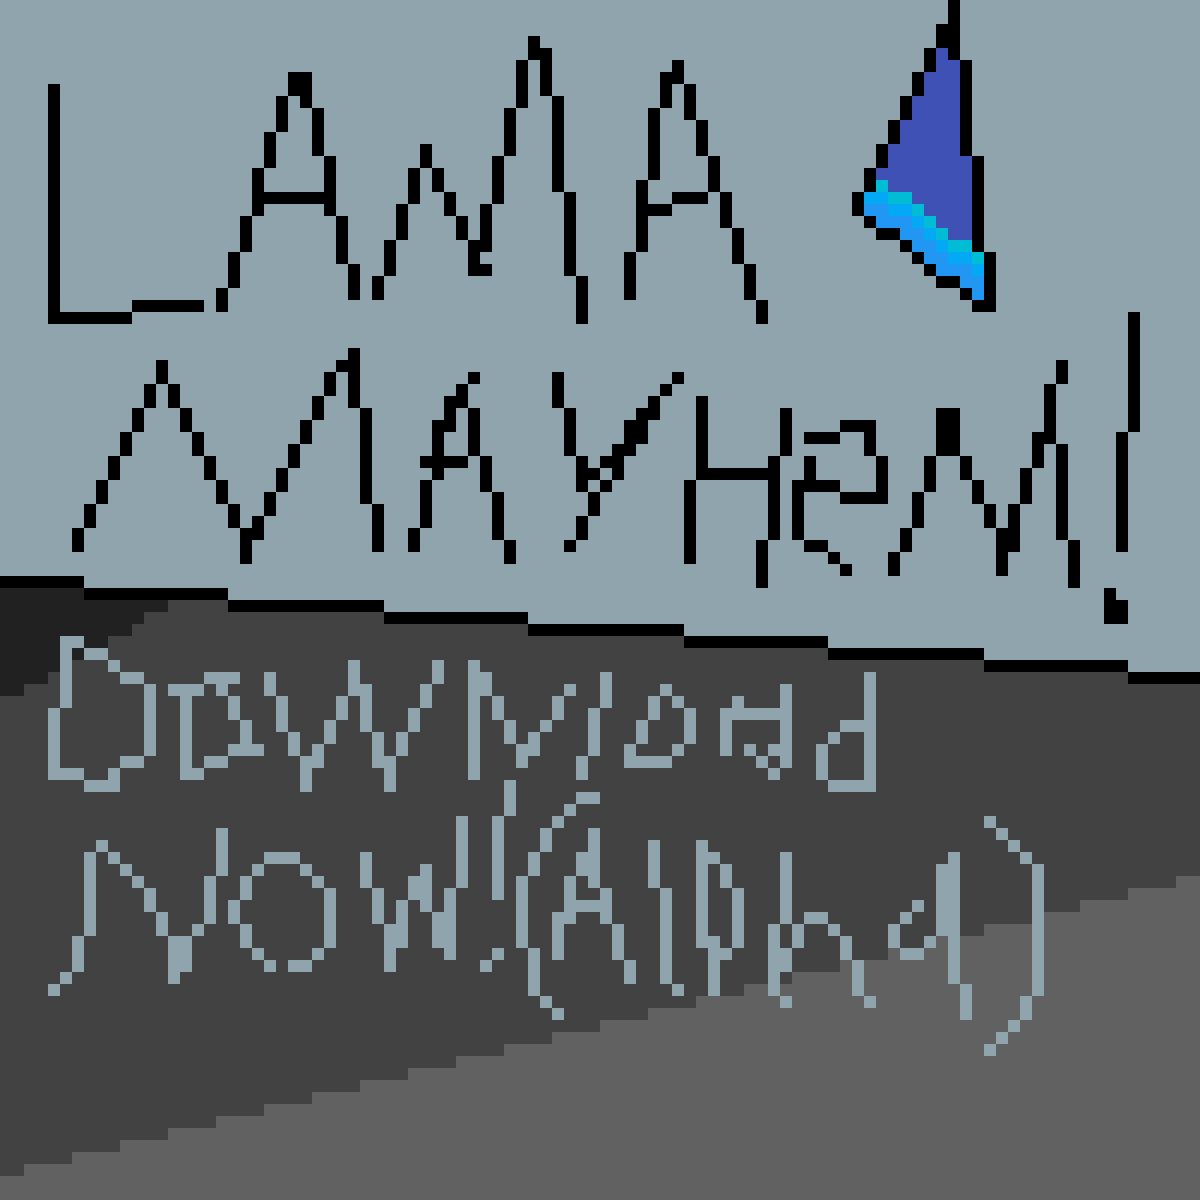 Llama Mayhem Download Link And Discord! by SirPixel